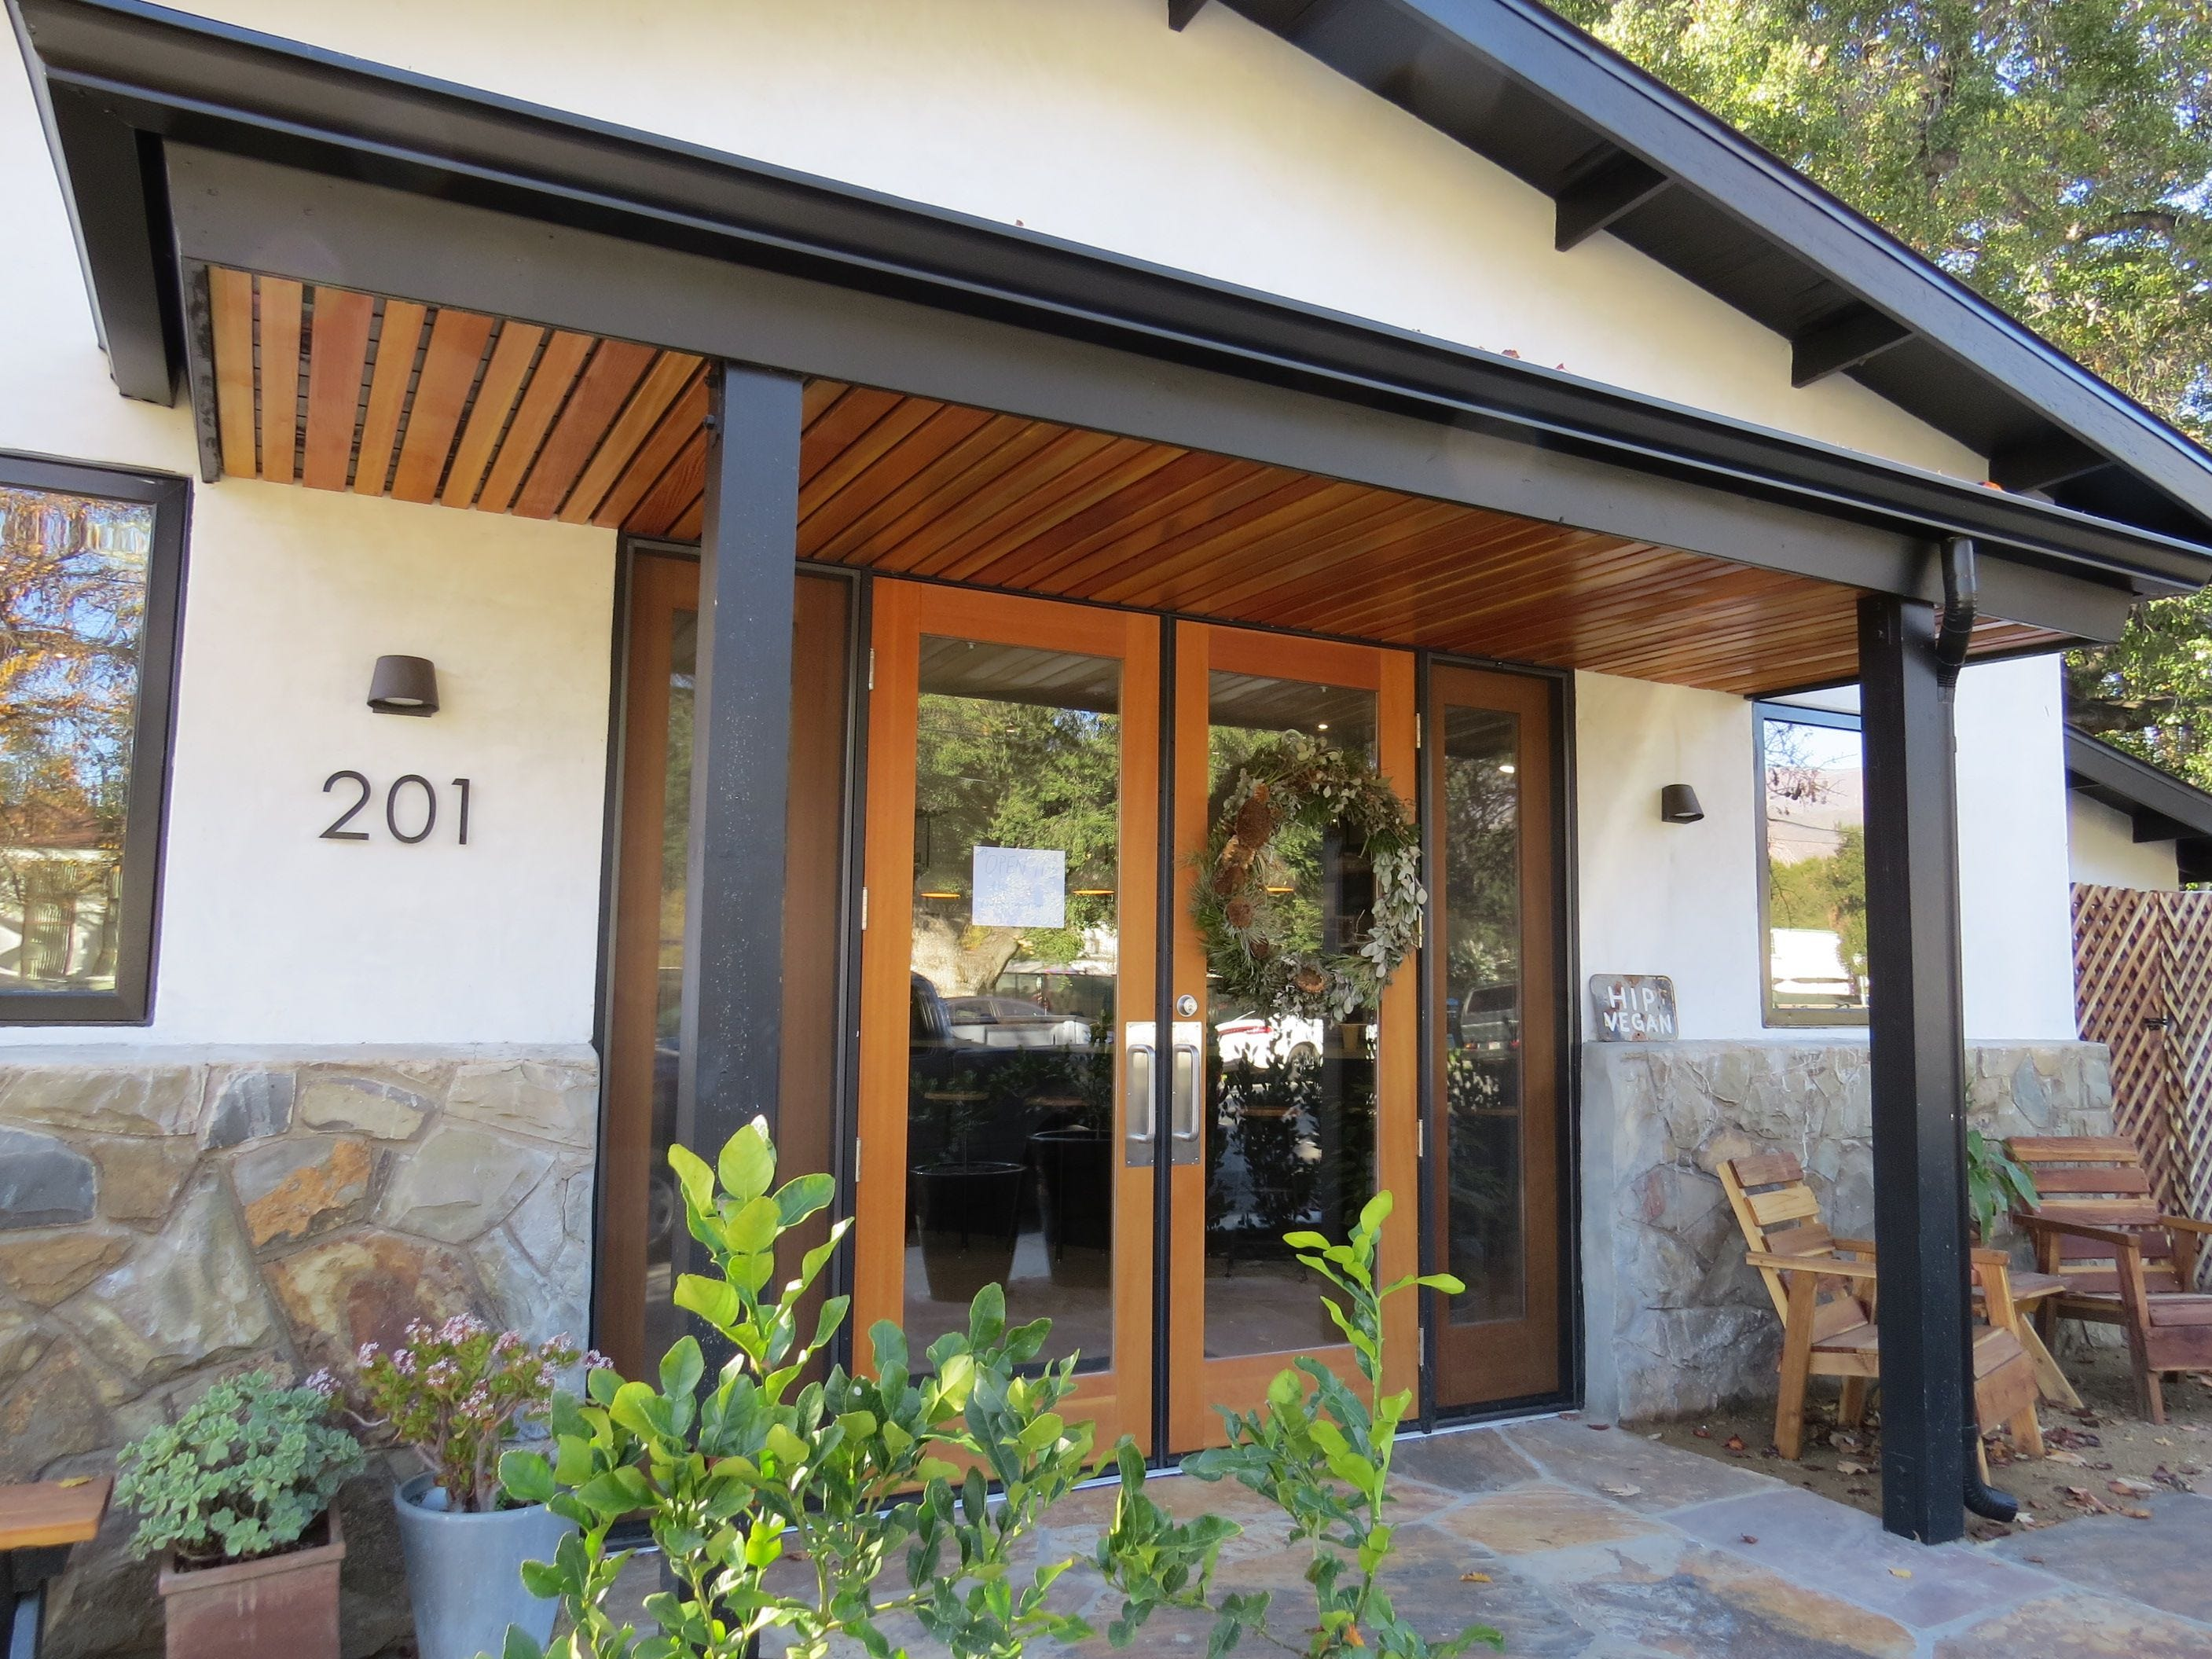 Hip Vegan had their reopening in a new location during the week of Jan 6th at 201 N. Montgomery St. in Ojai. https://bit.ly/2Maf0sY